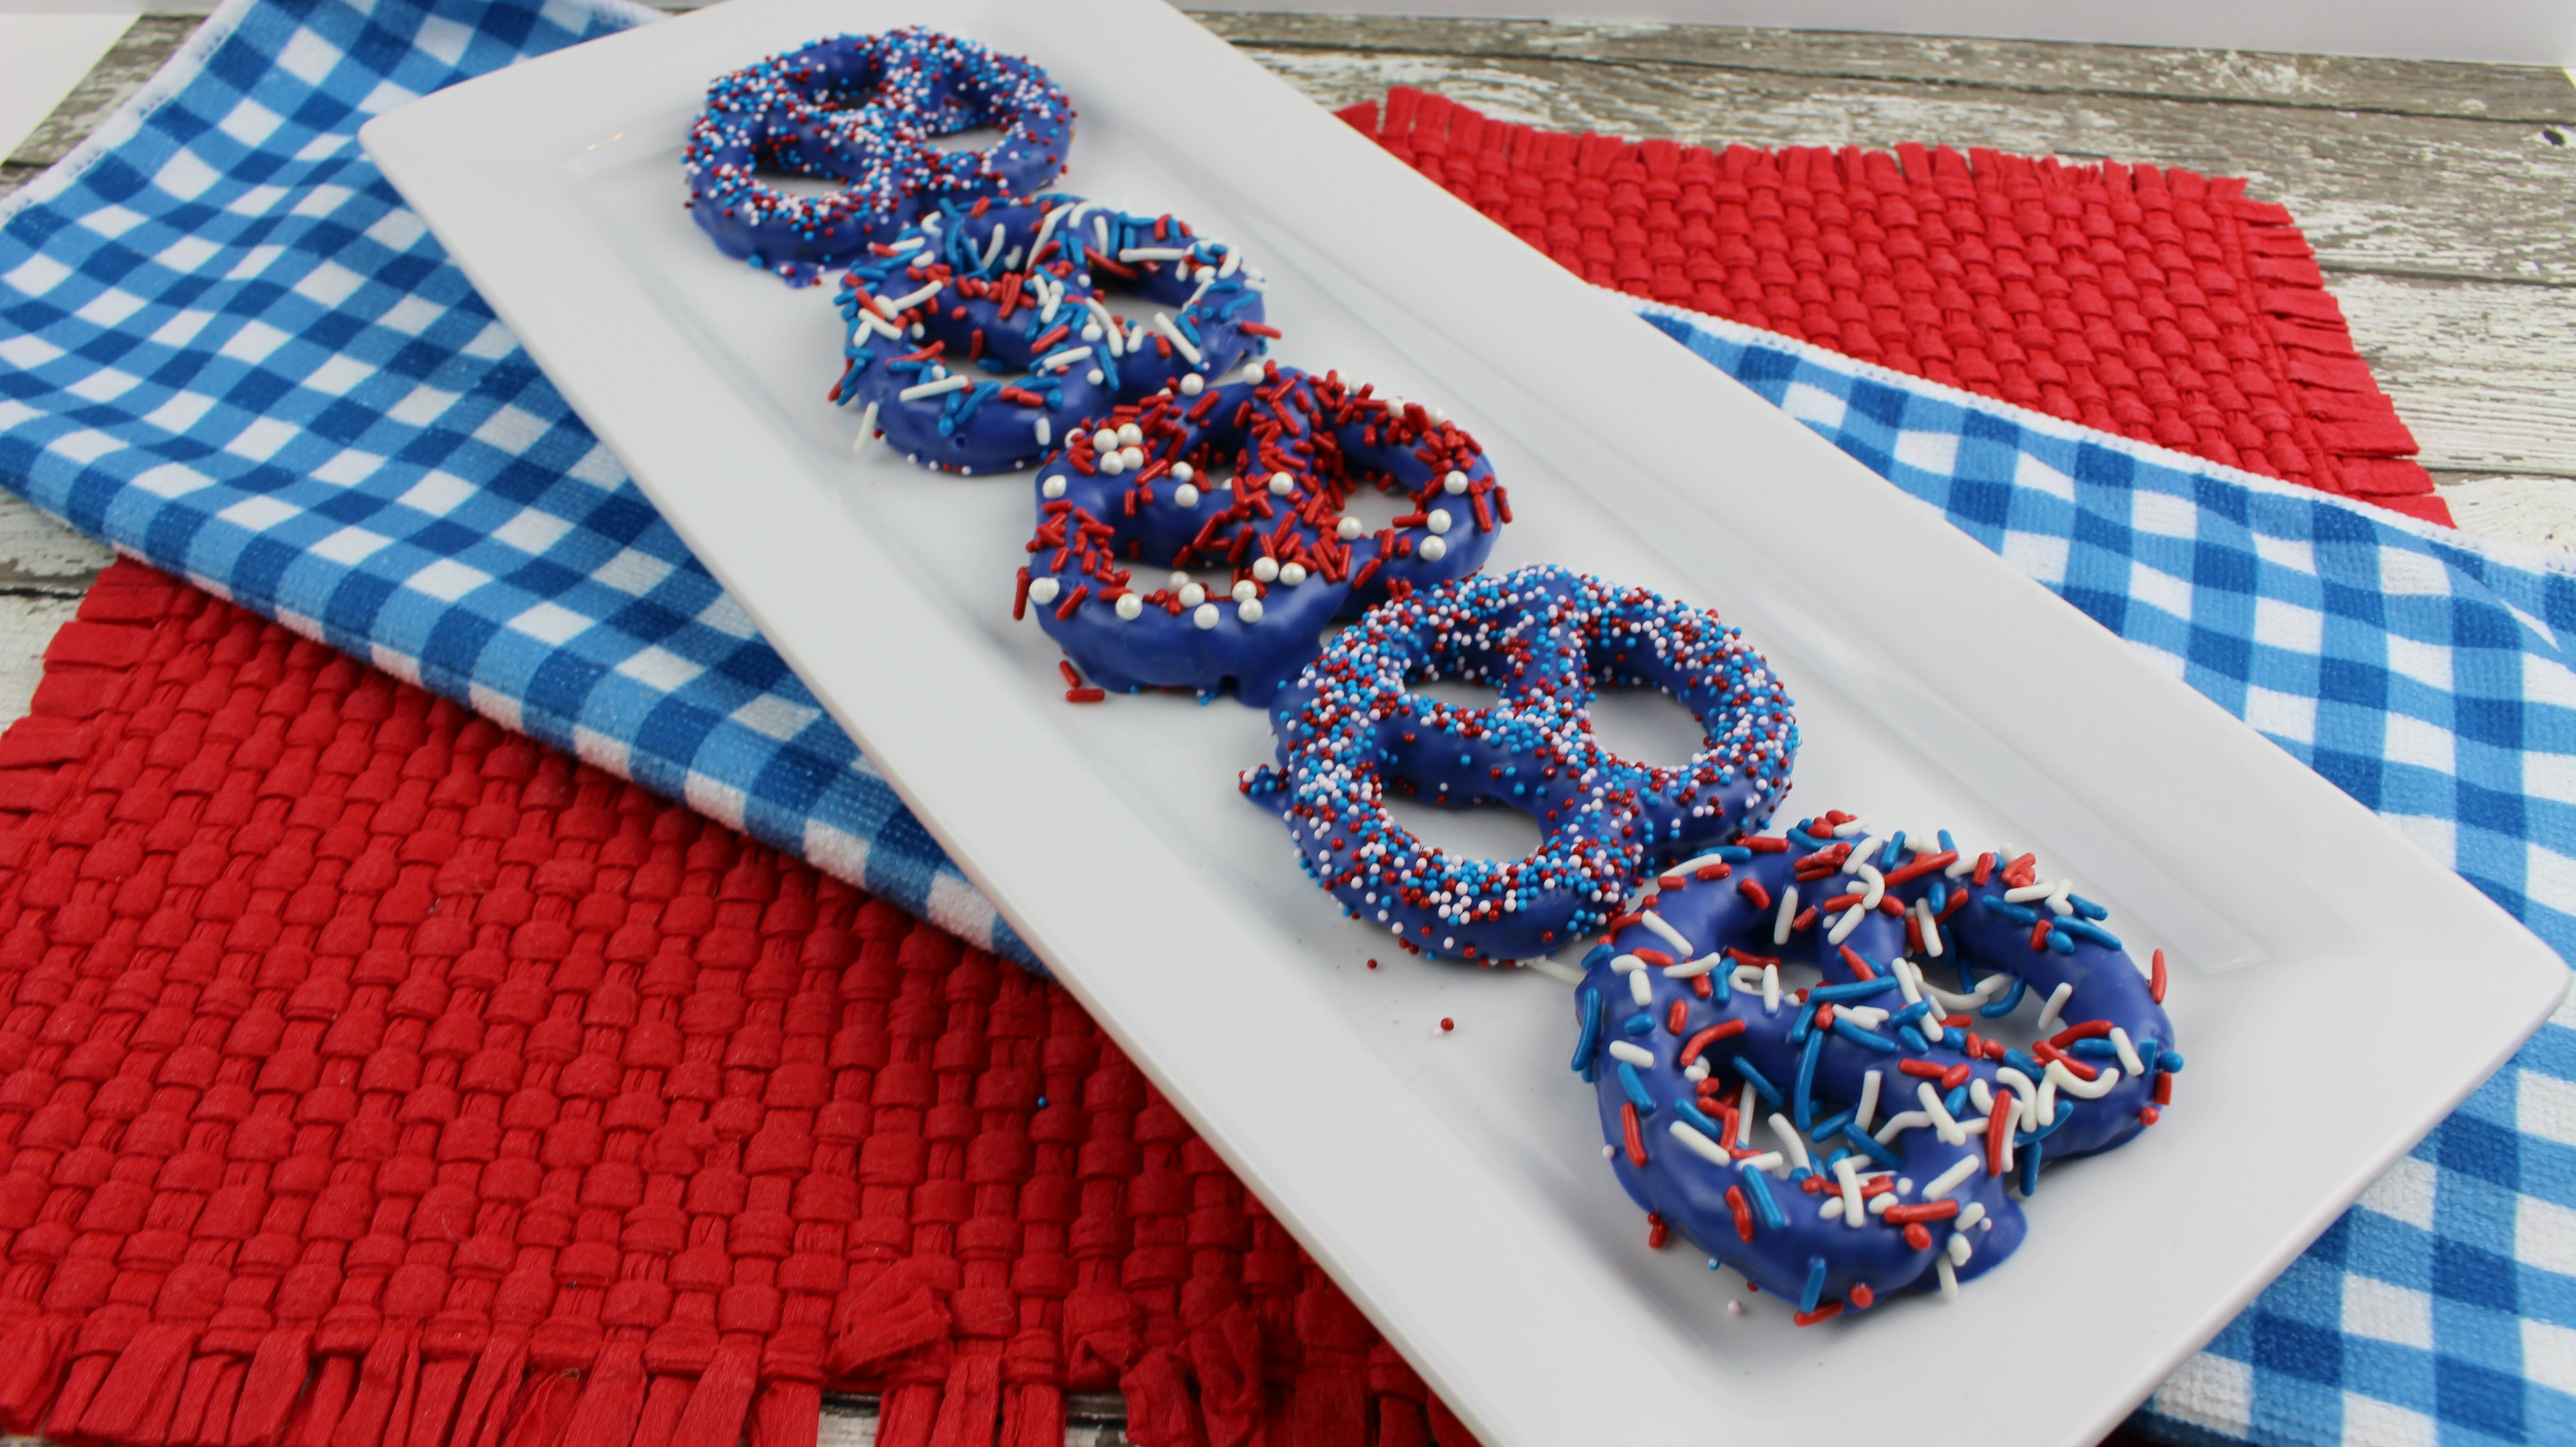 Patriotic Prezels make a great treat for a picnic or just an afternoon snack. Perfect for a 4th of July treat or Memorial Day dessert (1)